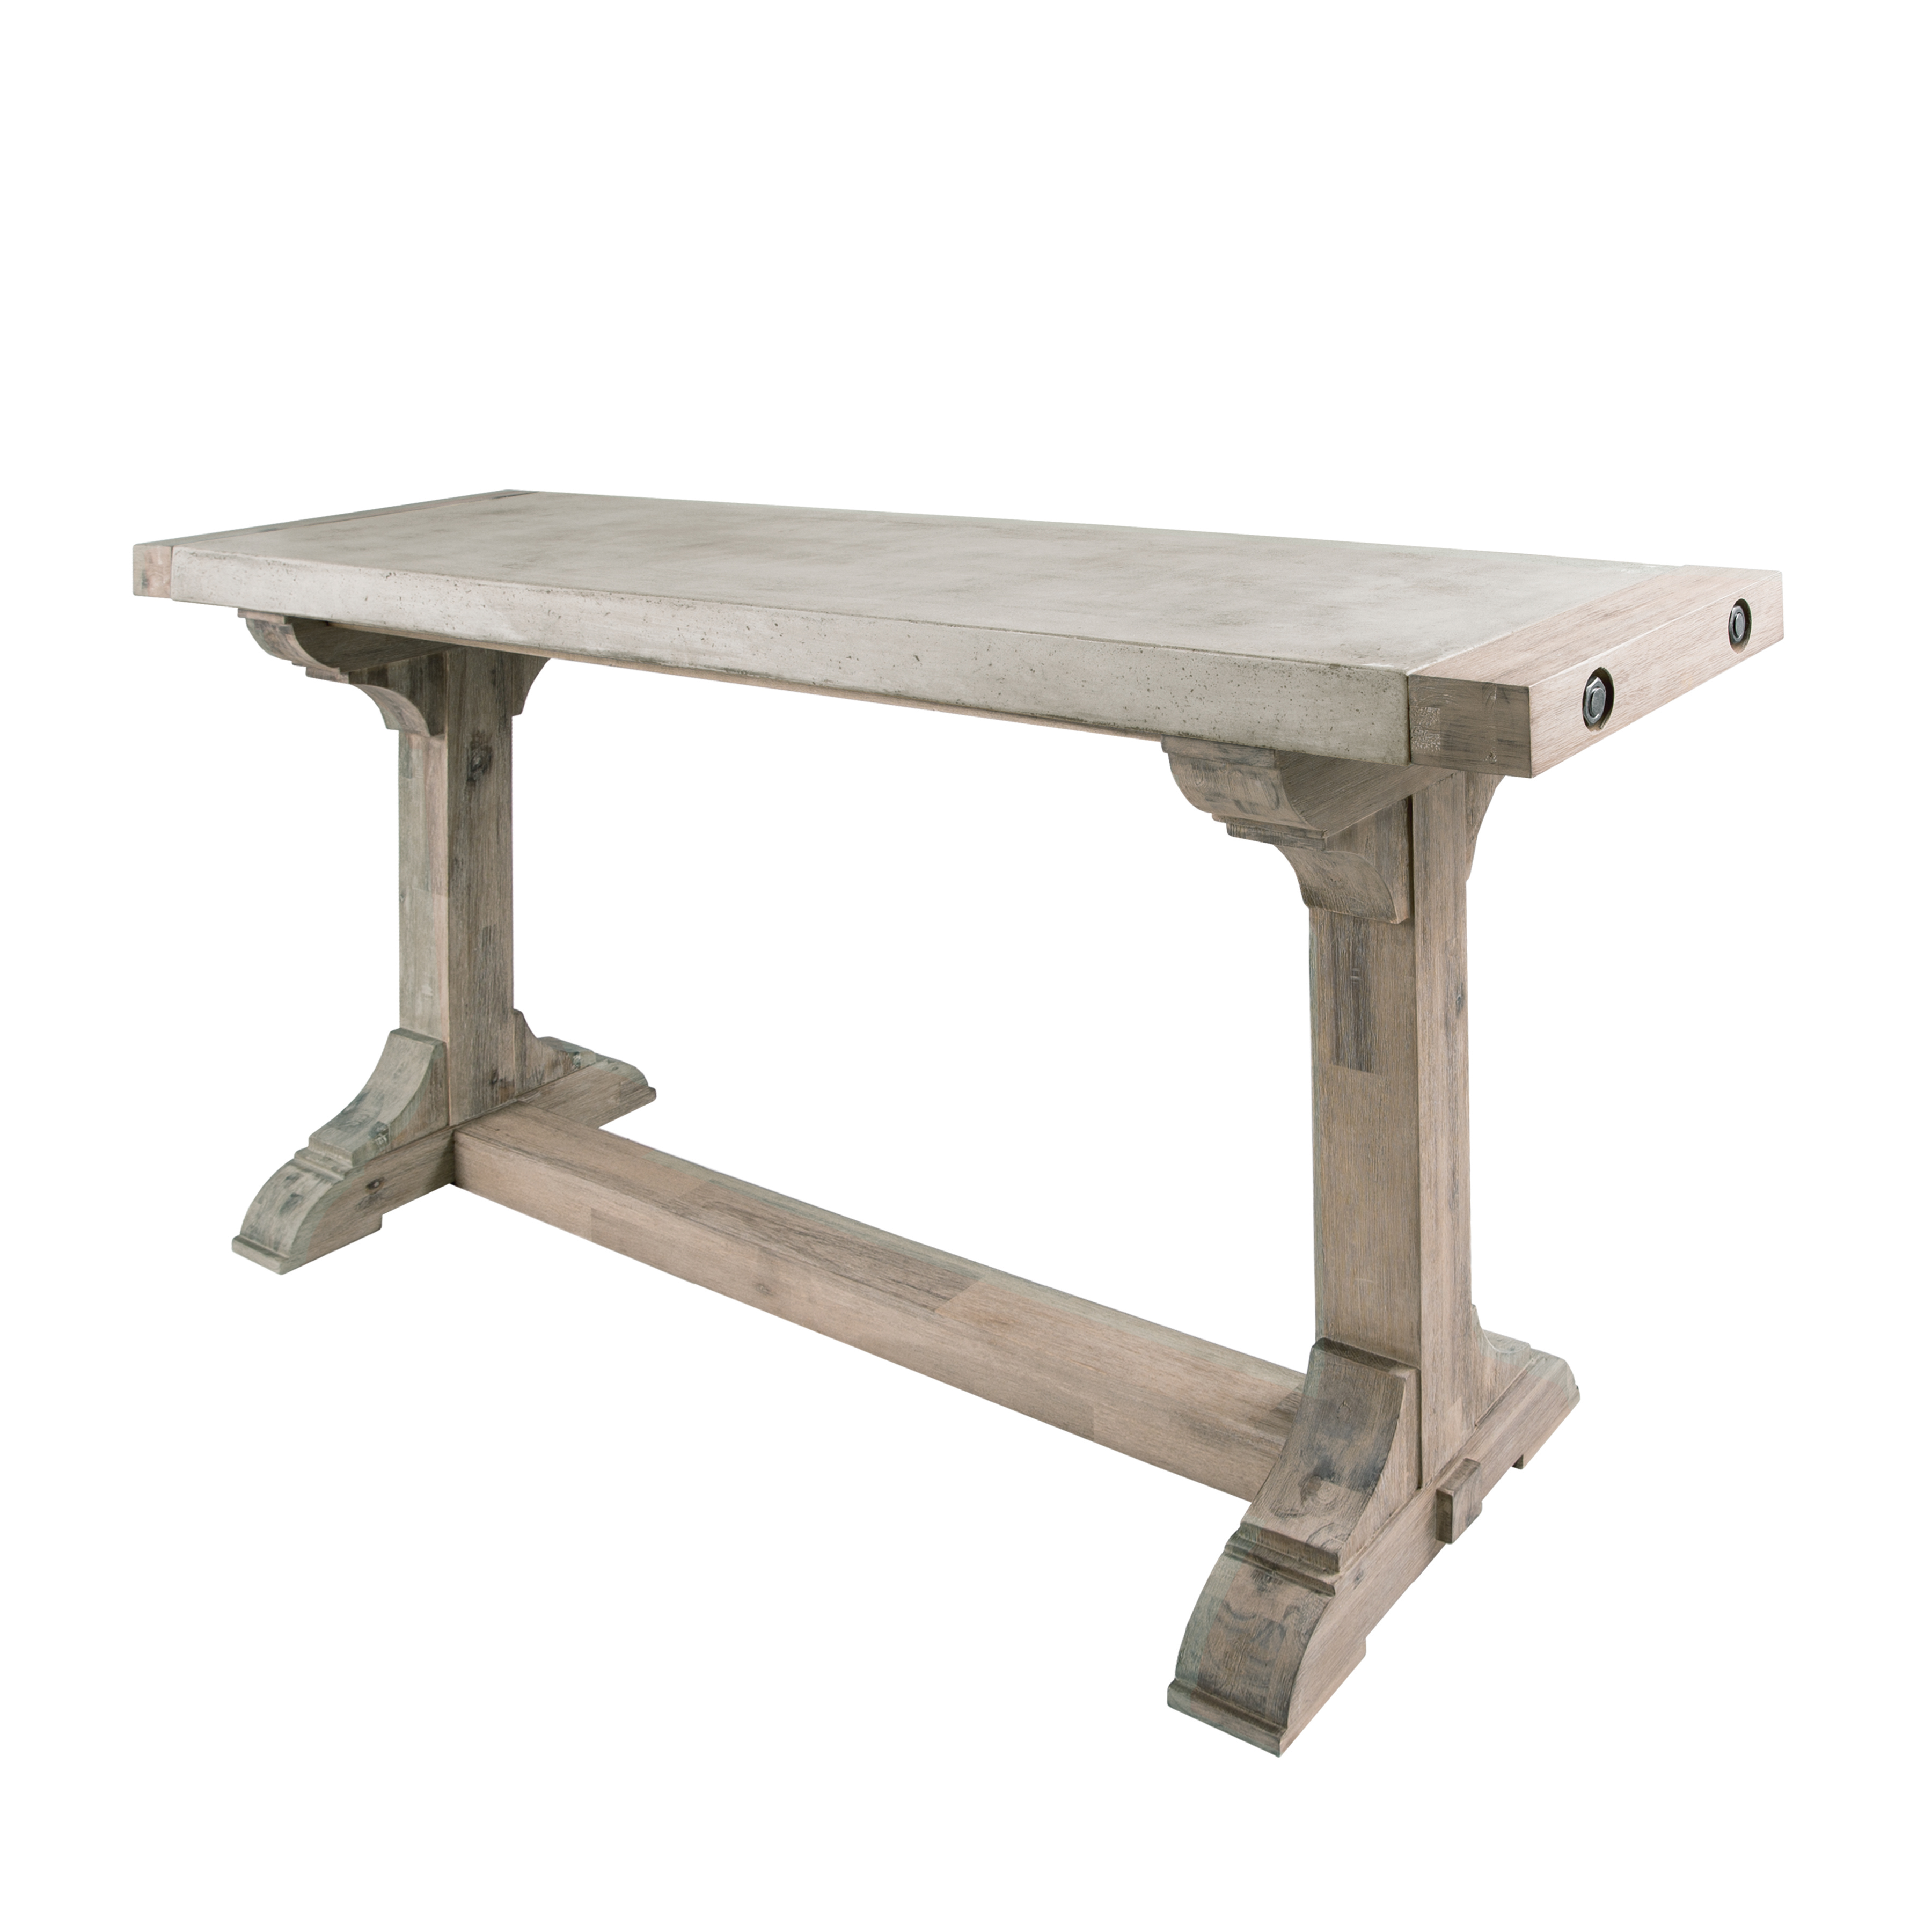 Pirate Console Table in Concrete and Wood with Waxed Atlantic Finish | Elk Home